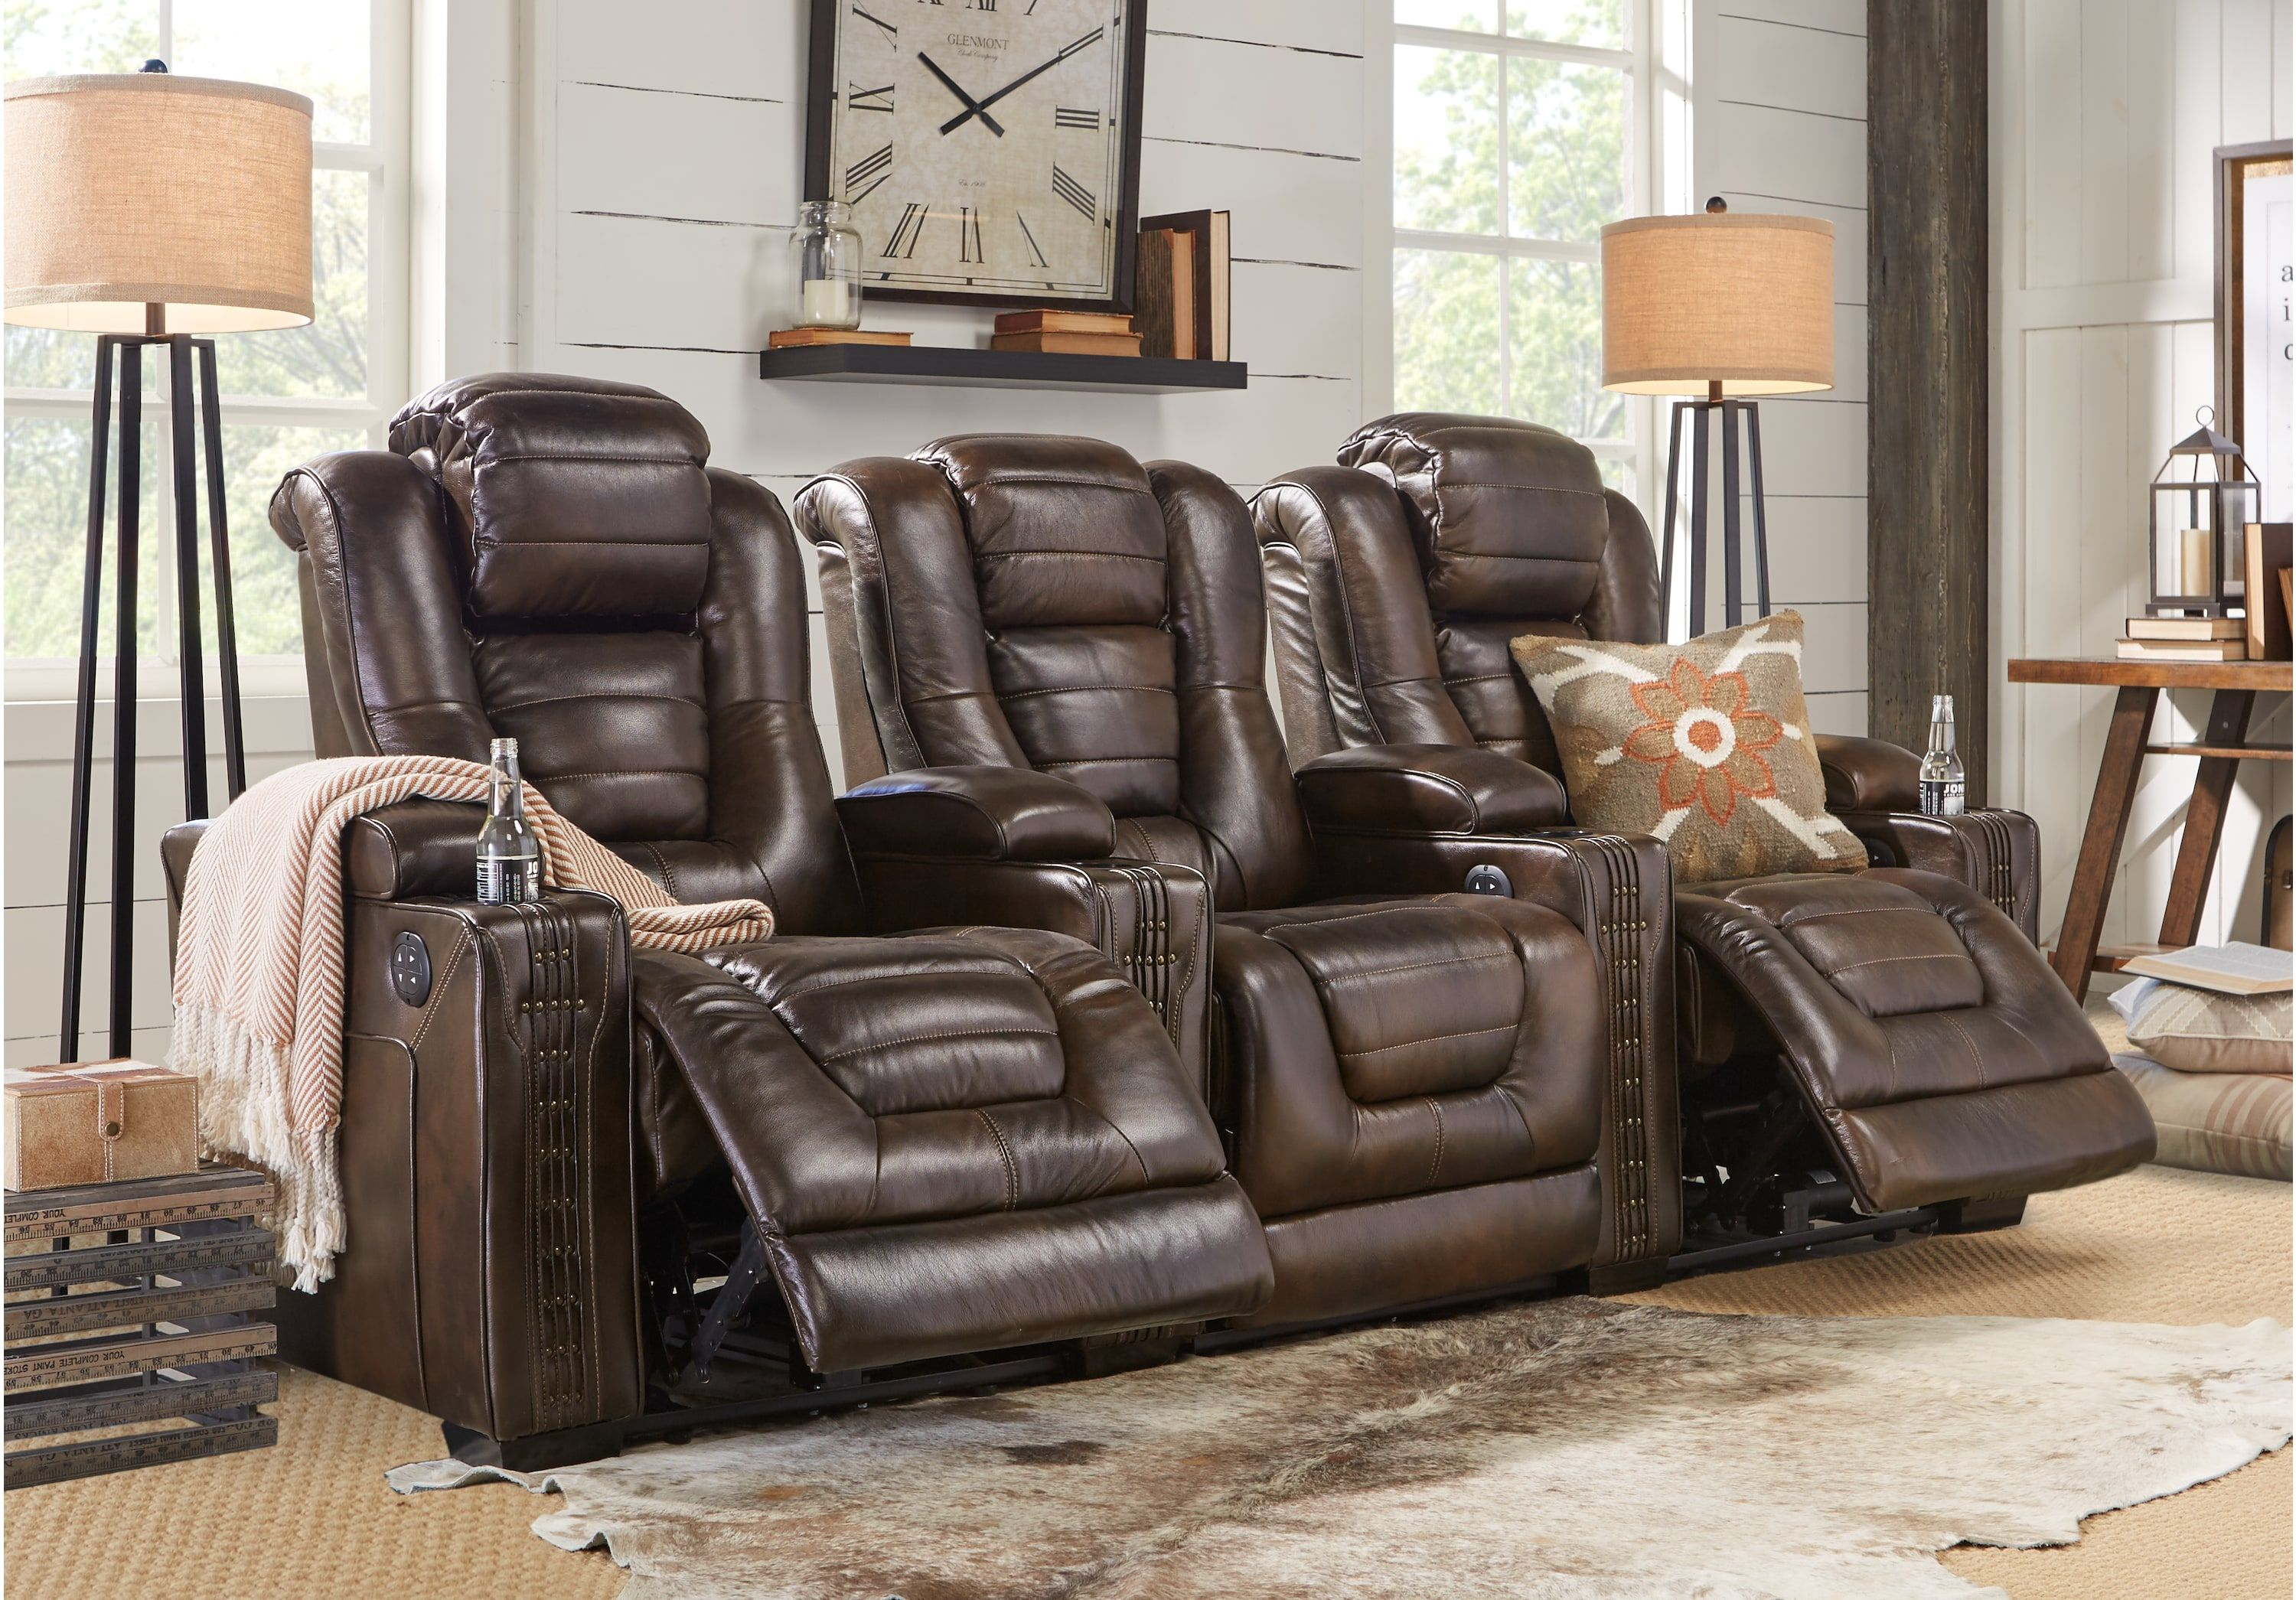 Tremendous Eric Church Highway To Home Renegade Brown Leather 3 Pc Uwap Interior Chair Design Uwaporg